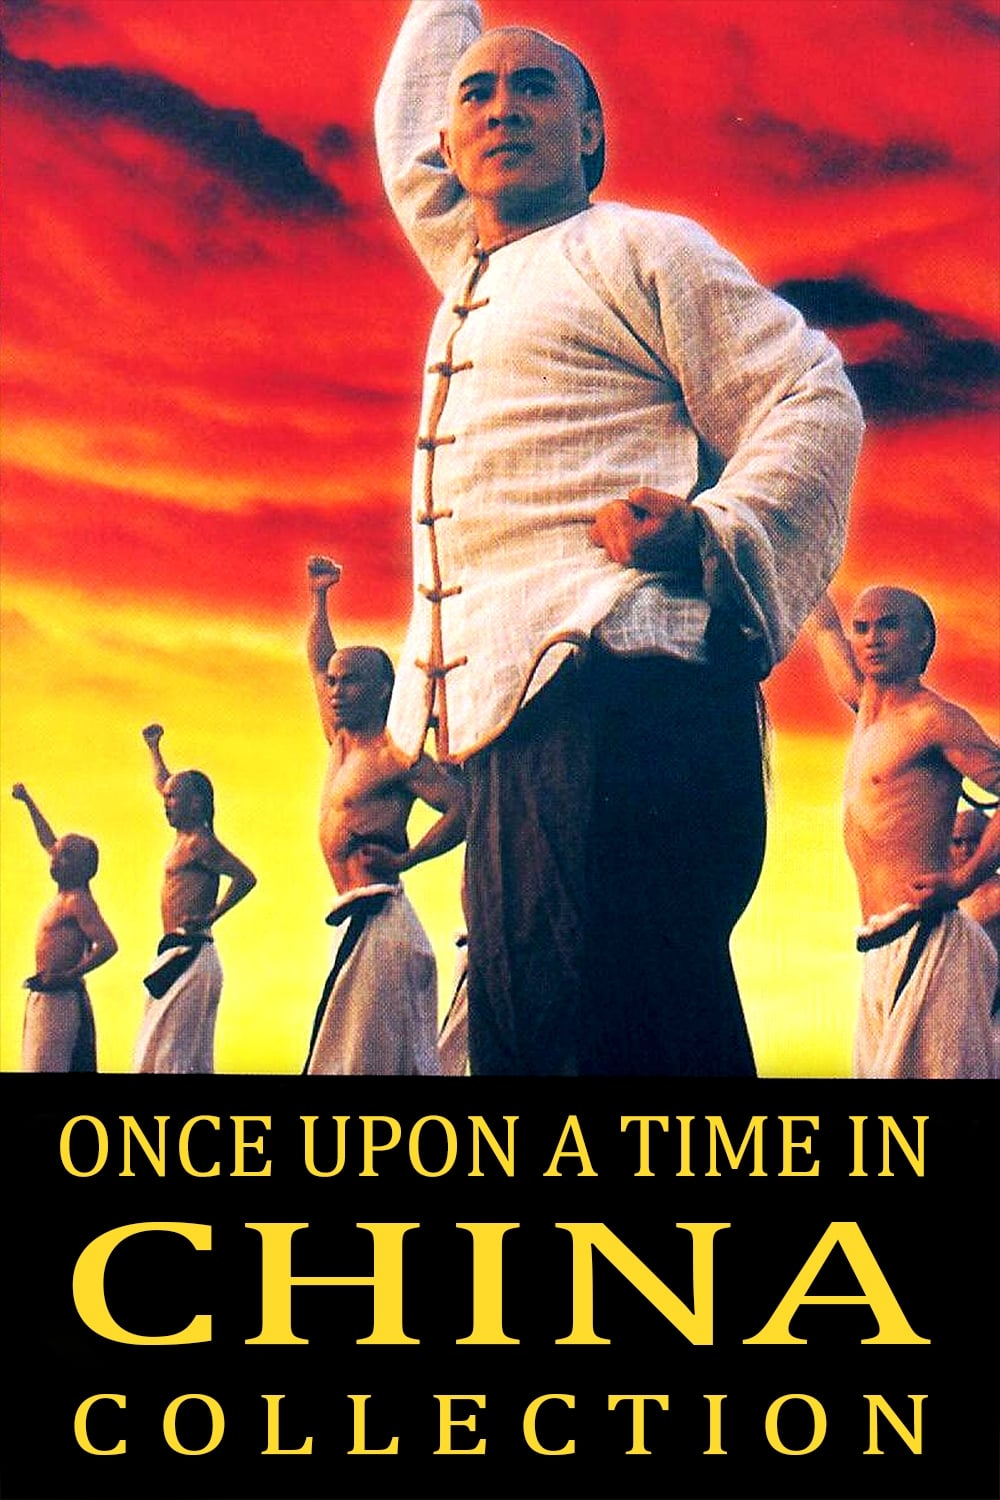 Once Upon a Time in China III (1993) - enthus1ast